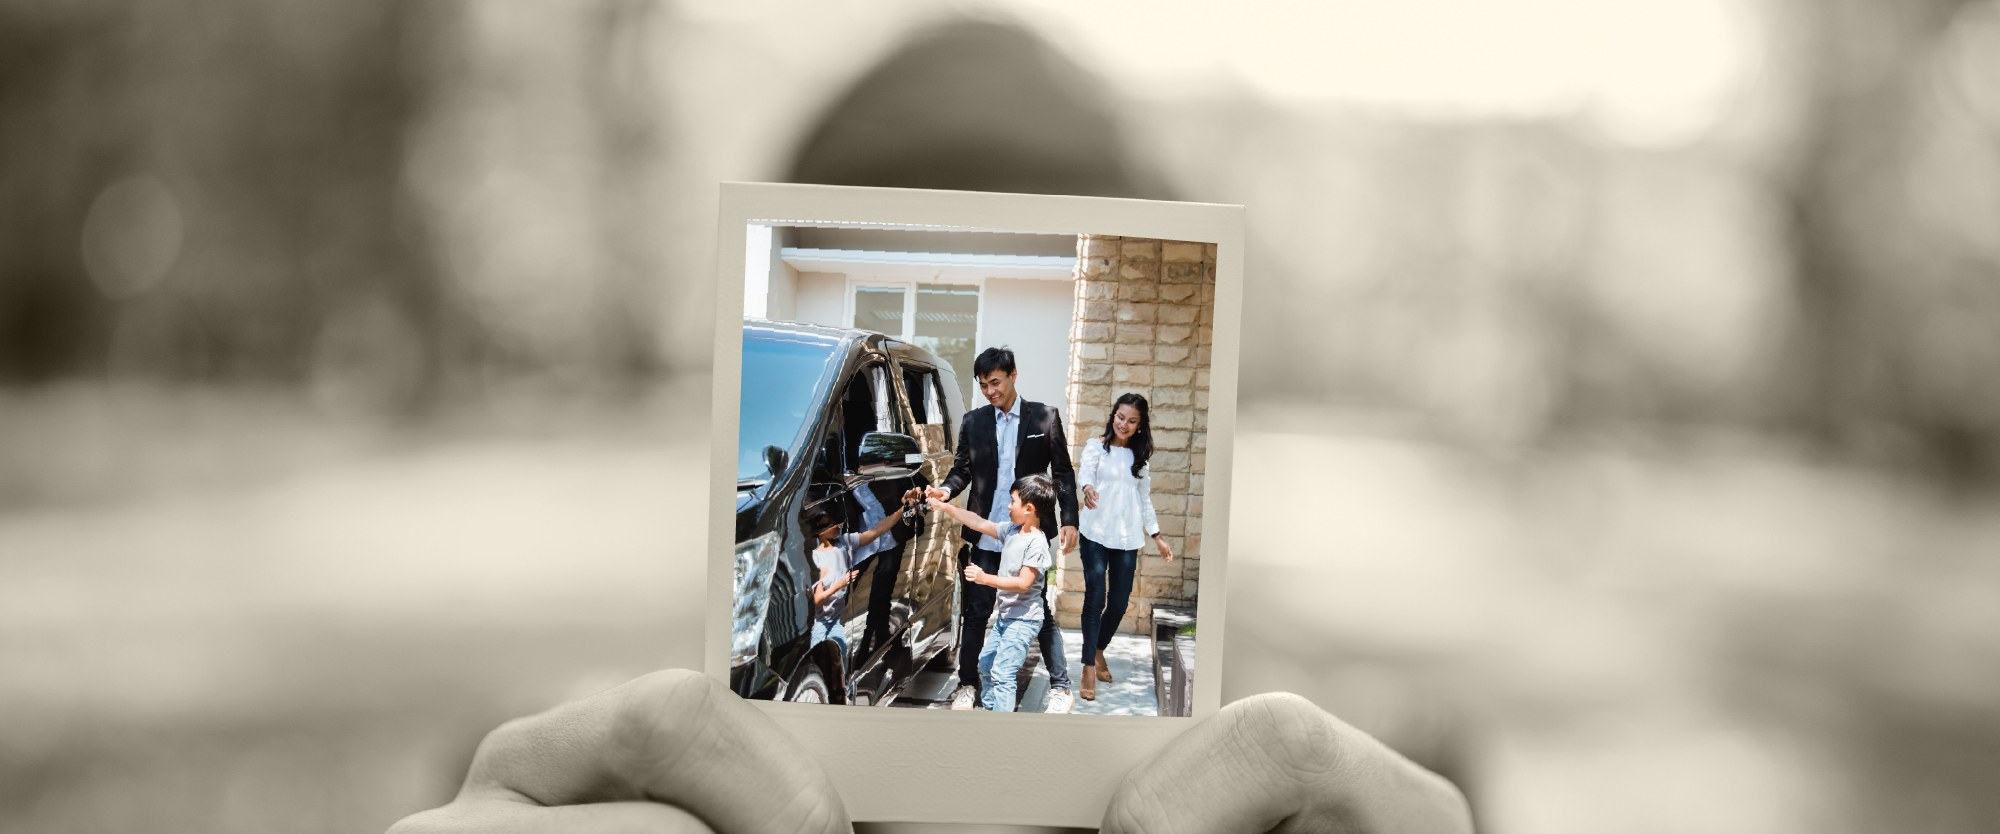 polaroid of family getting into a car on driveway of their home